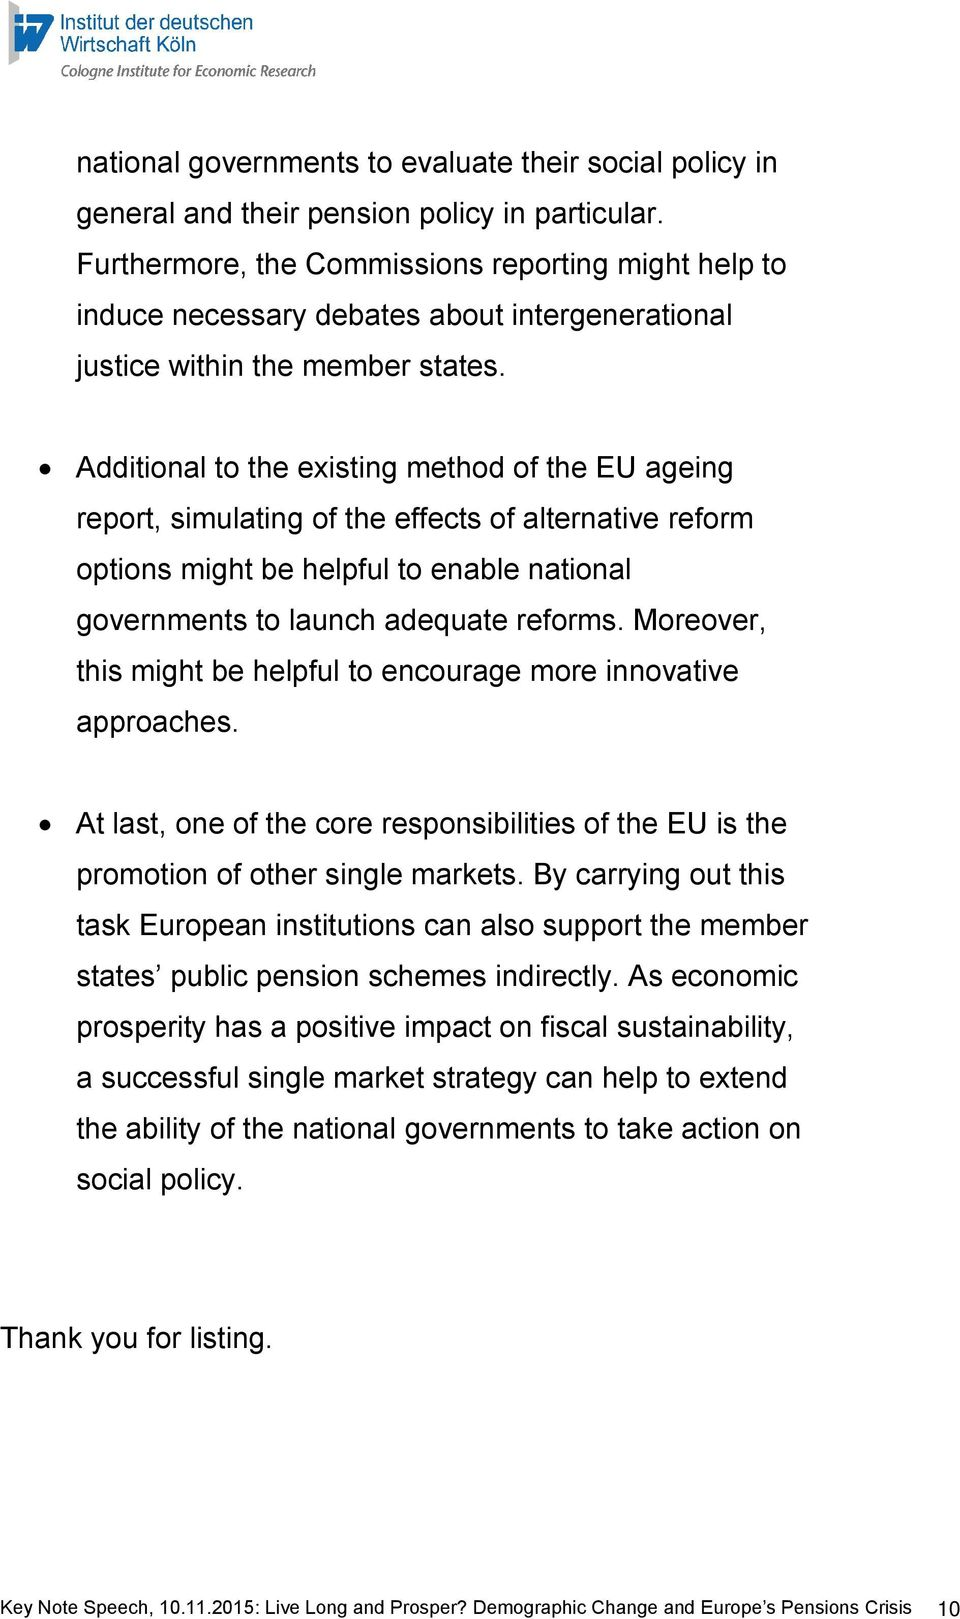 Additional to the existing method of the EU ageing report, simulating of the effects of alternative reform options might be helpful to enable national governments to launch adequate reforms.